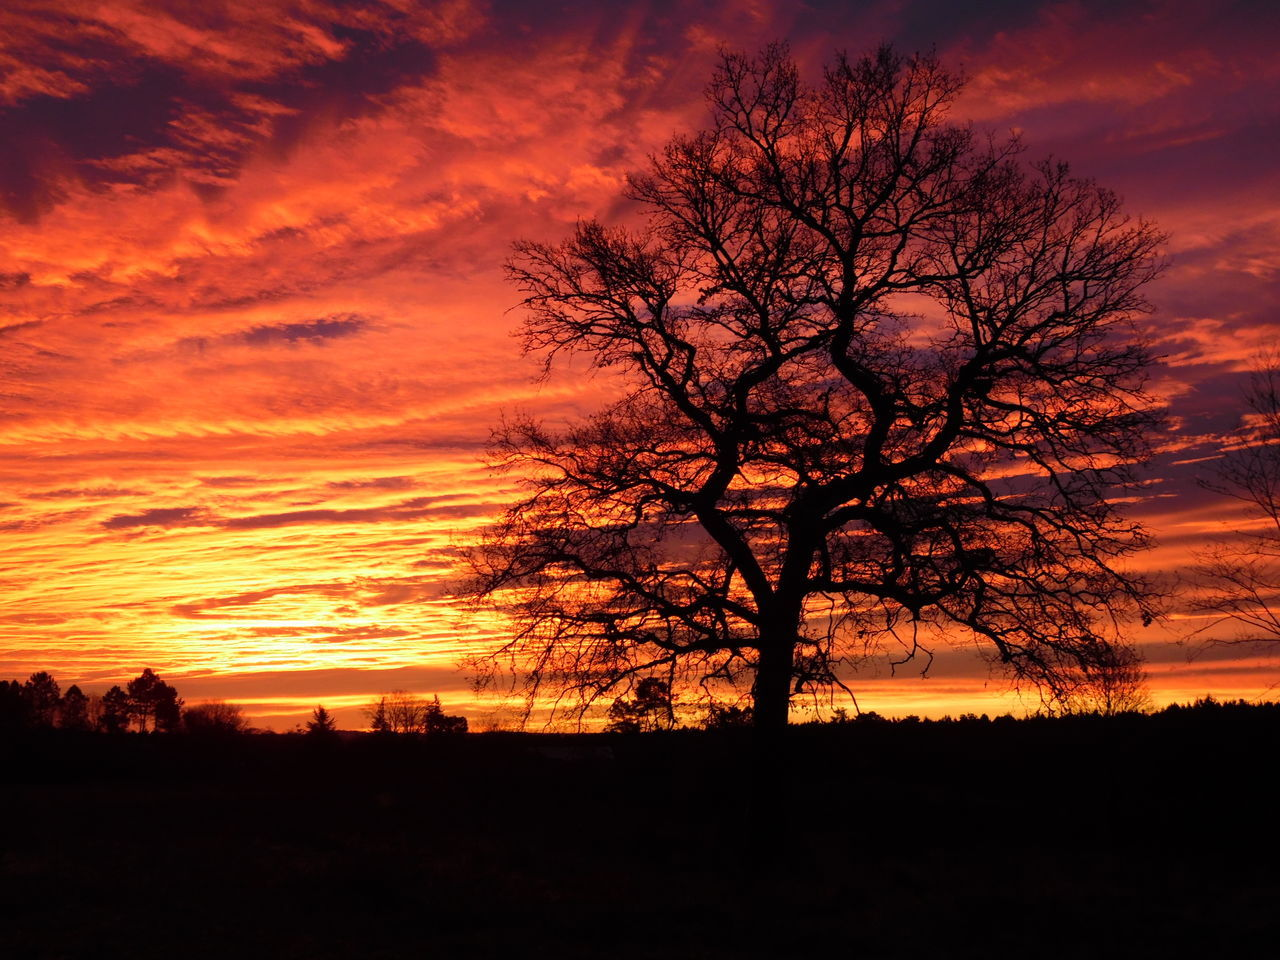 Silhouette Of Bare Tree On Landscape